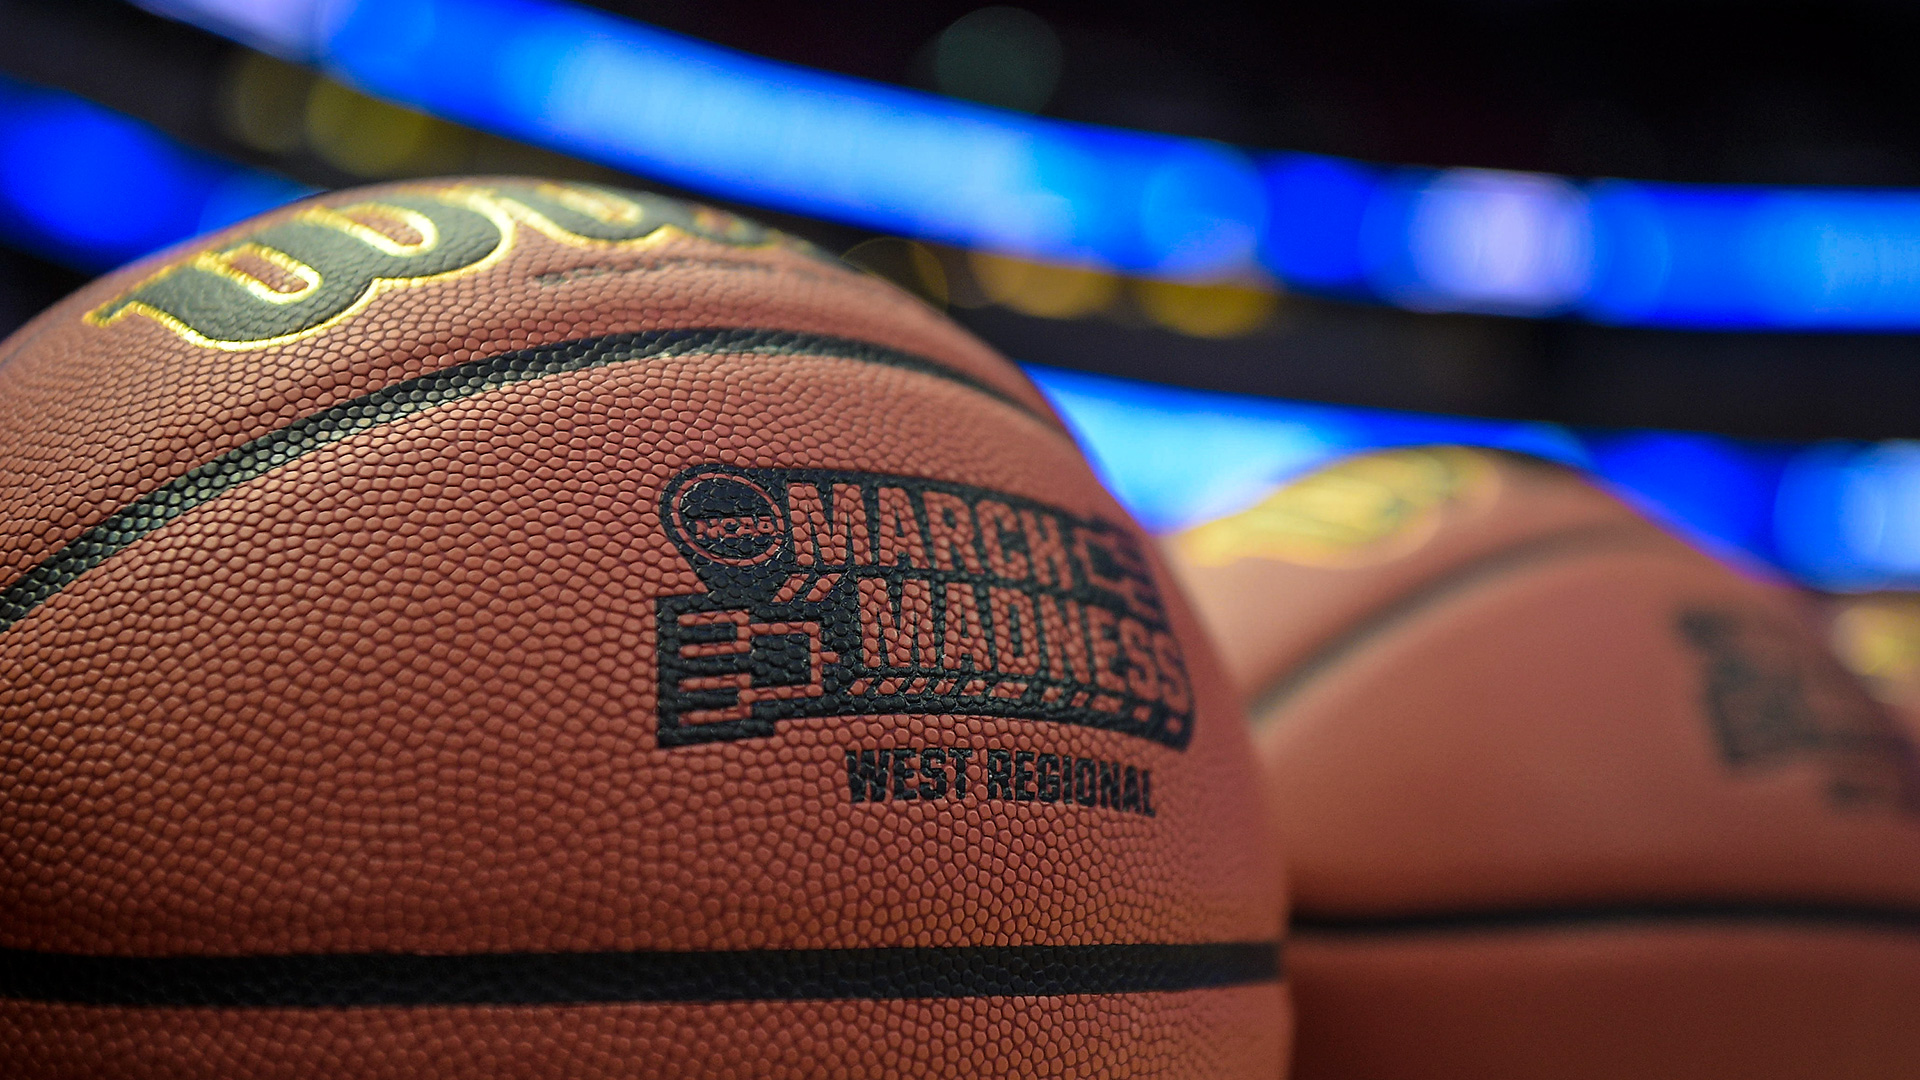 March Madness 2019: Looking At College Basketball's (un